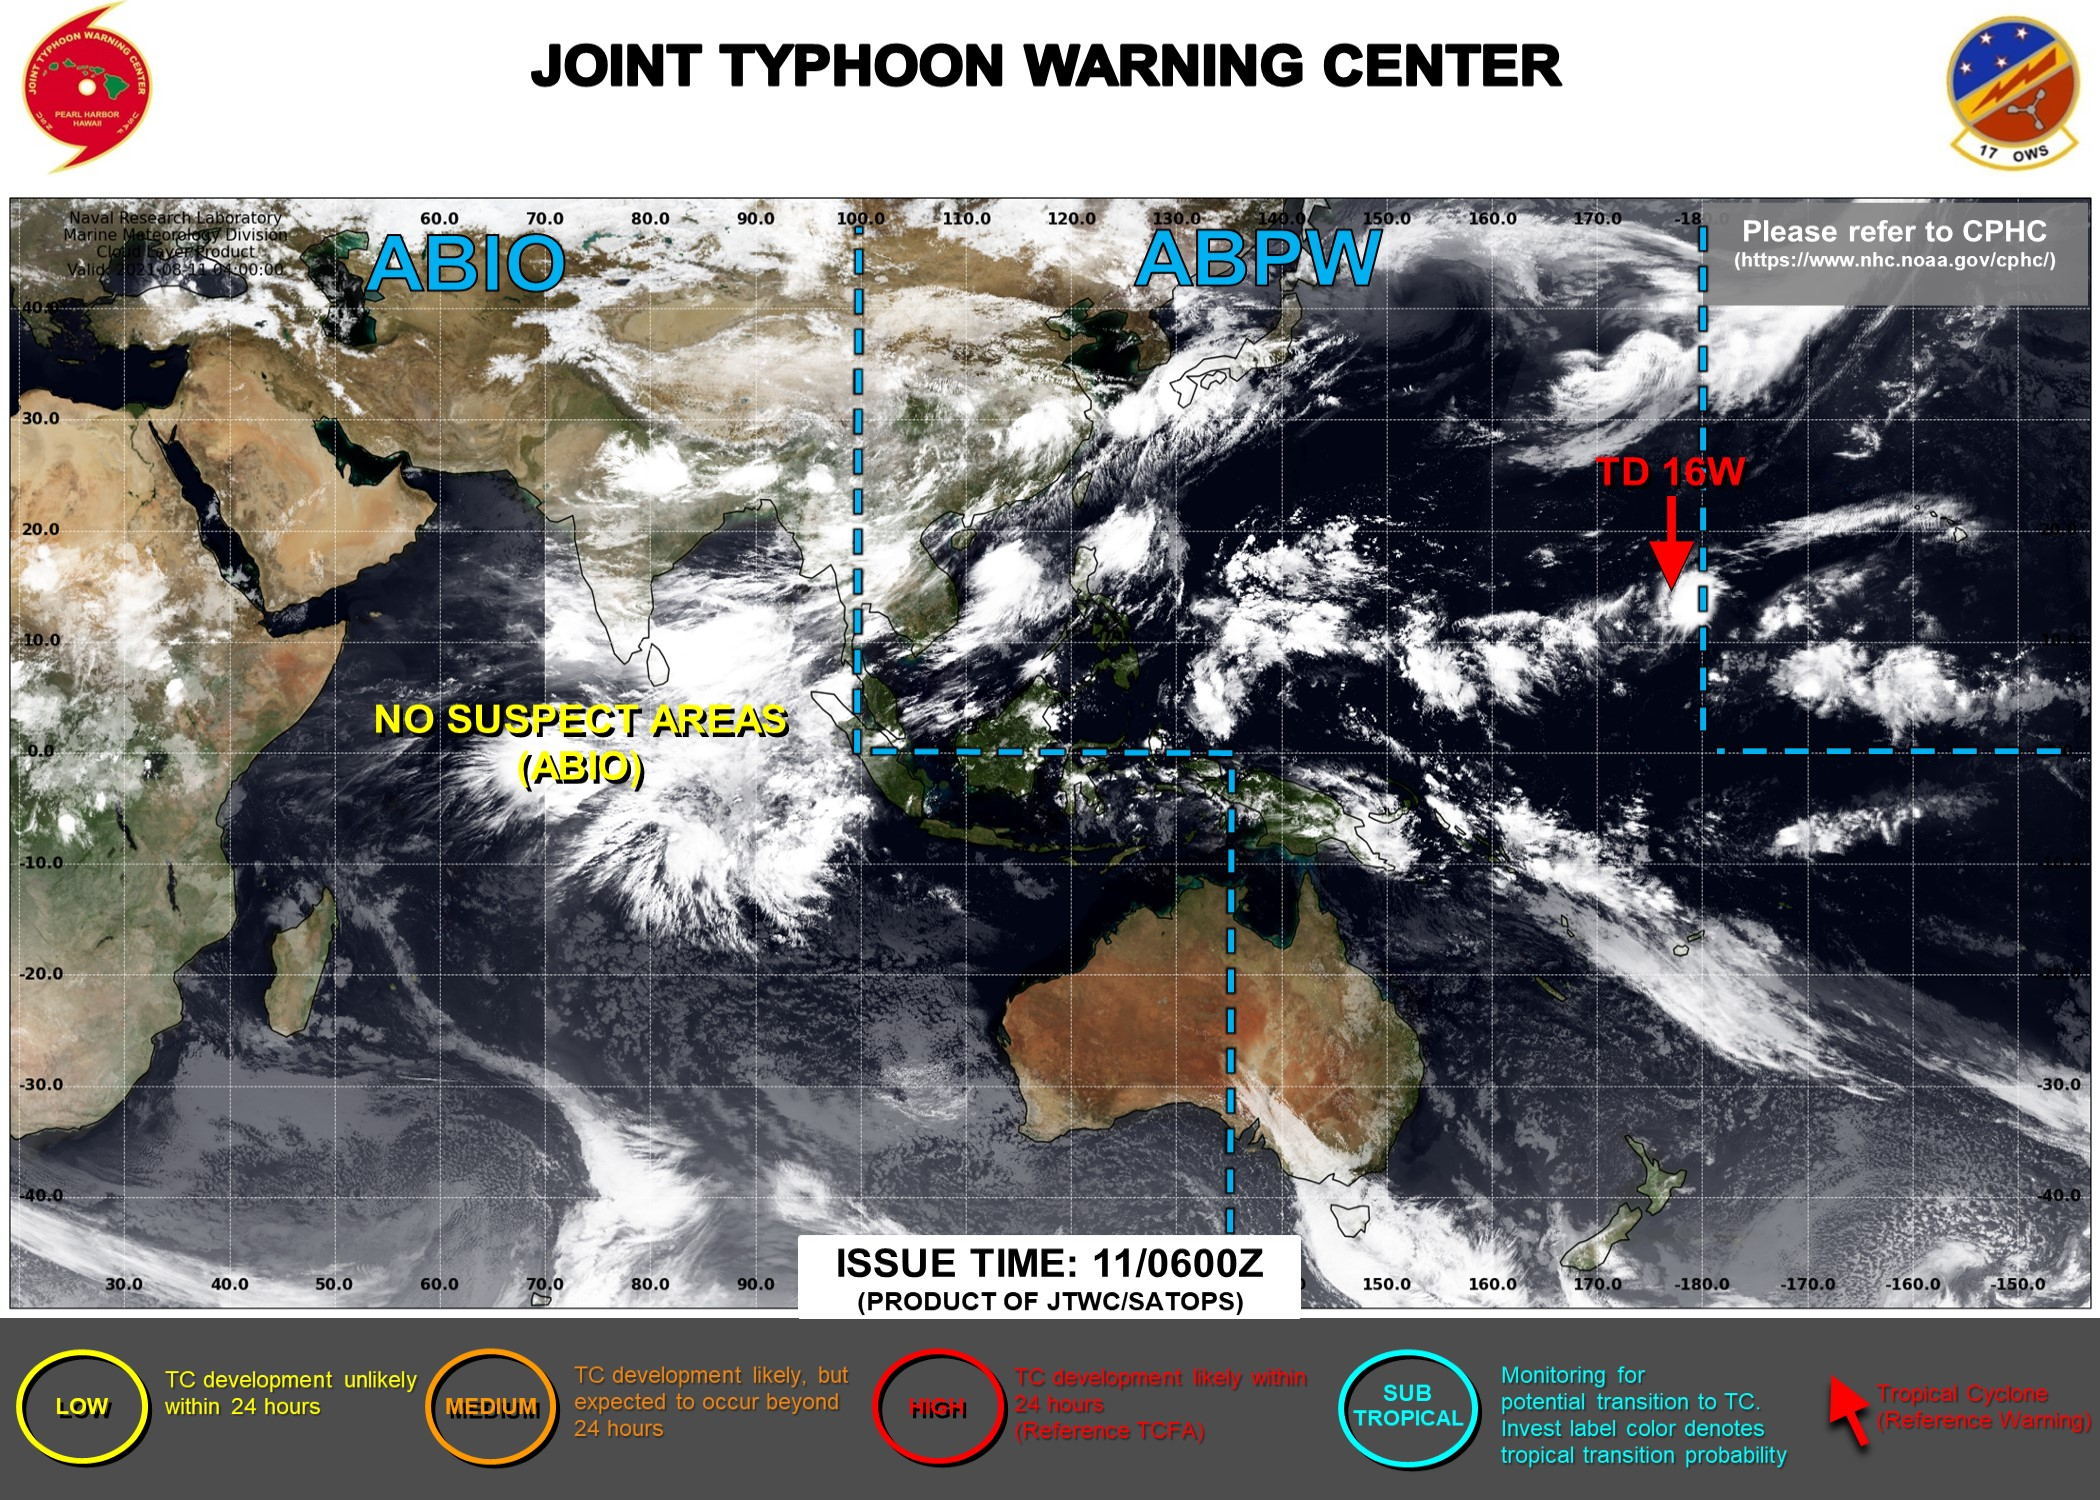 JTWC ARE ISSUING 6HOURLY WARNINGS AND 3HOURLY SATELLITE BULLETINS ON TD 16W.